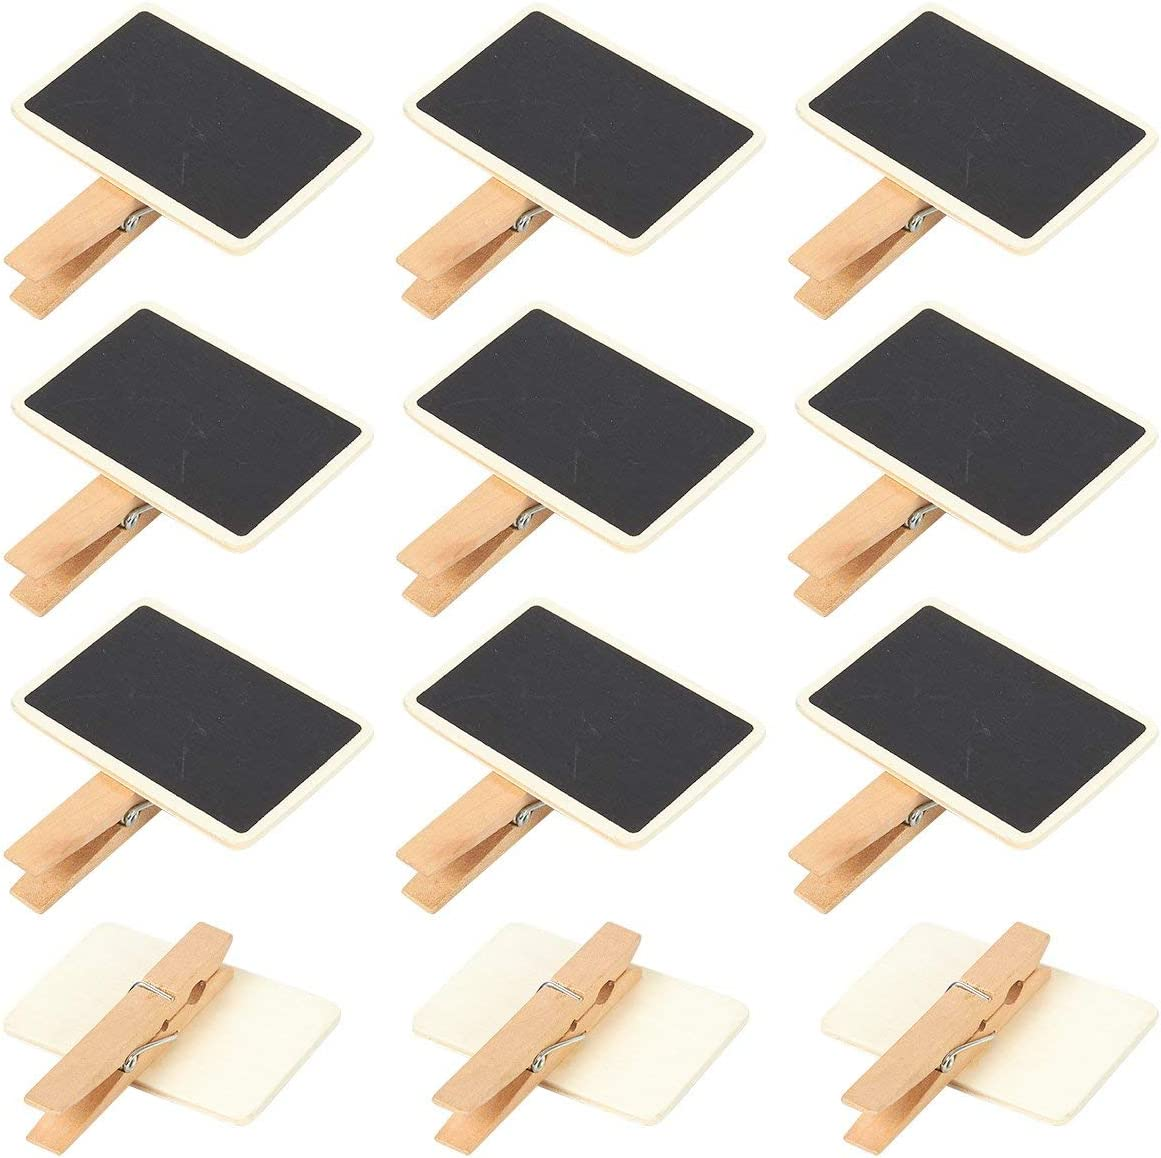 Chalkboard Signs with Mini Wooden Clothespins (2.6 x 2.3 x 0.5 in, 12-Pack)